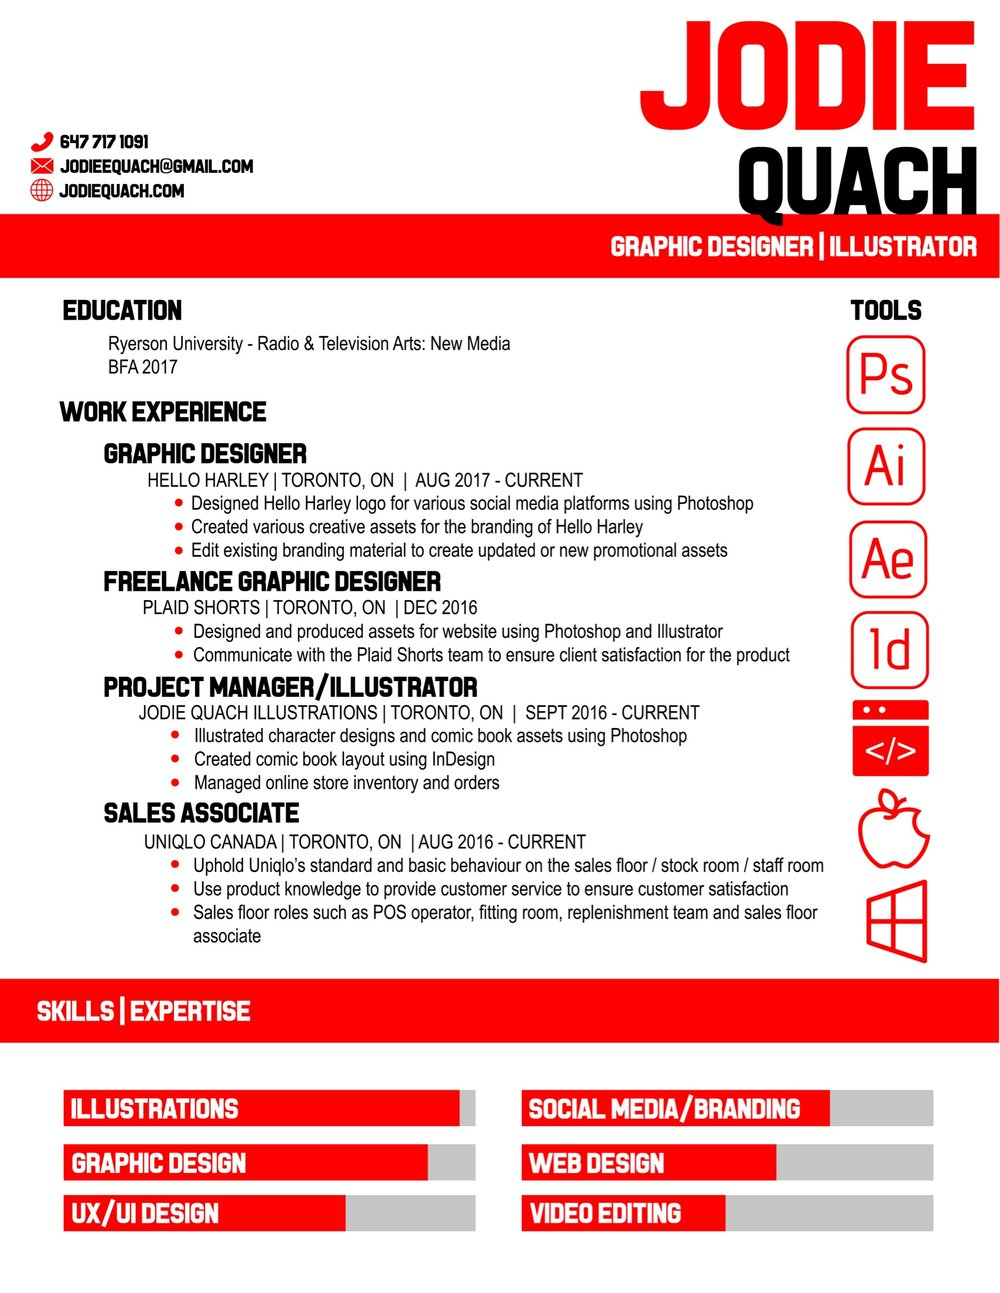 UNIQLO    This resume was created with the company's branding in mind. I wanted to create a resume that could be imagined as a flyer or handout by the company. I chose a simple, block typography for the title and headers  to keep the graphic simple and clean. I chose a simple sans serif typography to compliment the theme of simple lines and used their classic red to tie in the branding.